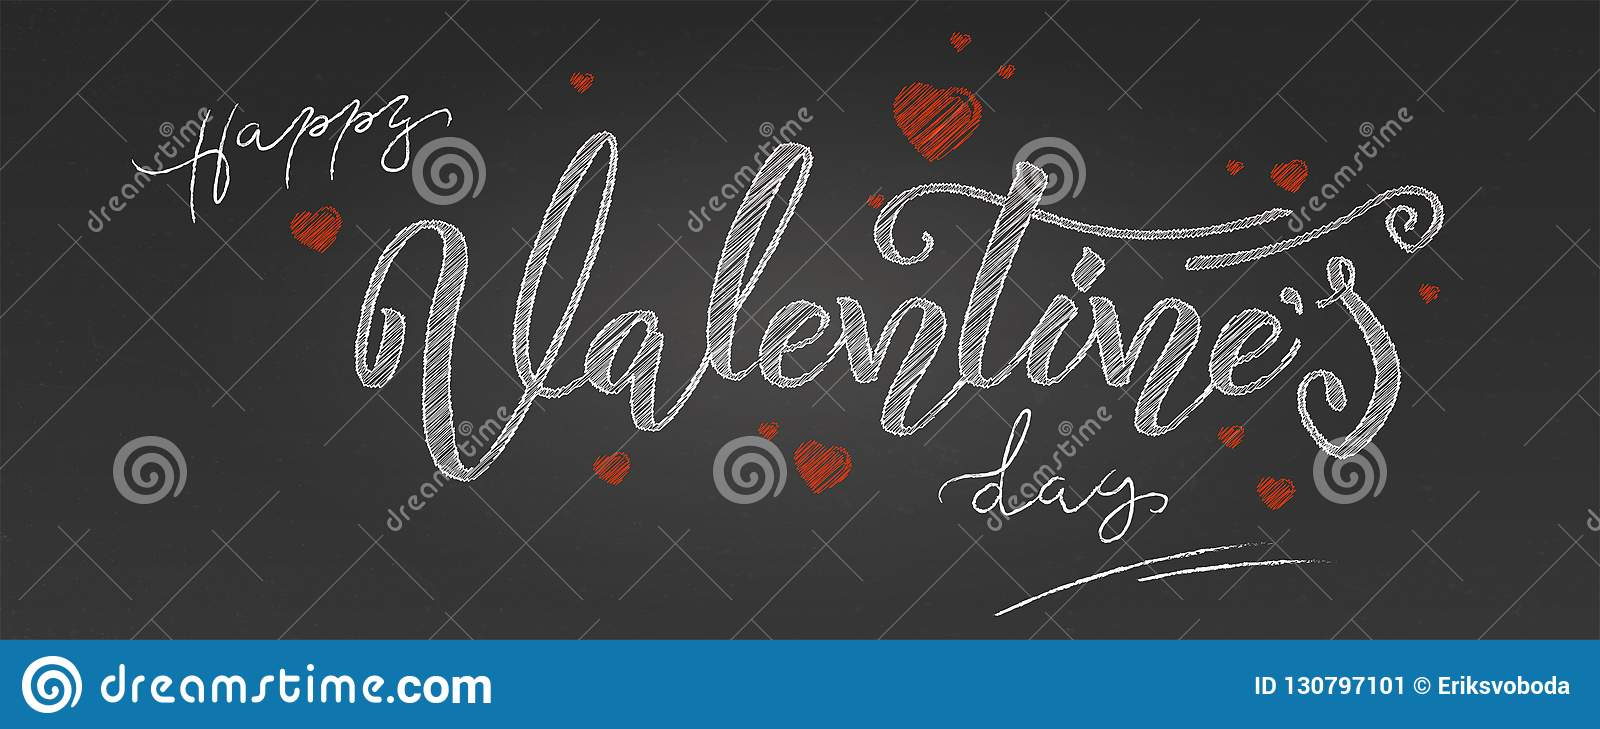 Valentine day. Holidays lettering, handwritten chalk inscription on school blackboard. Greetings with design of text in